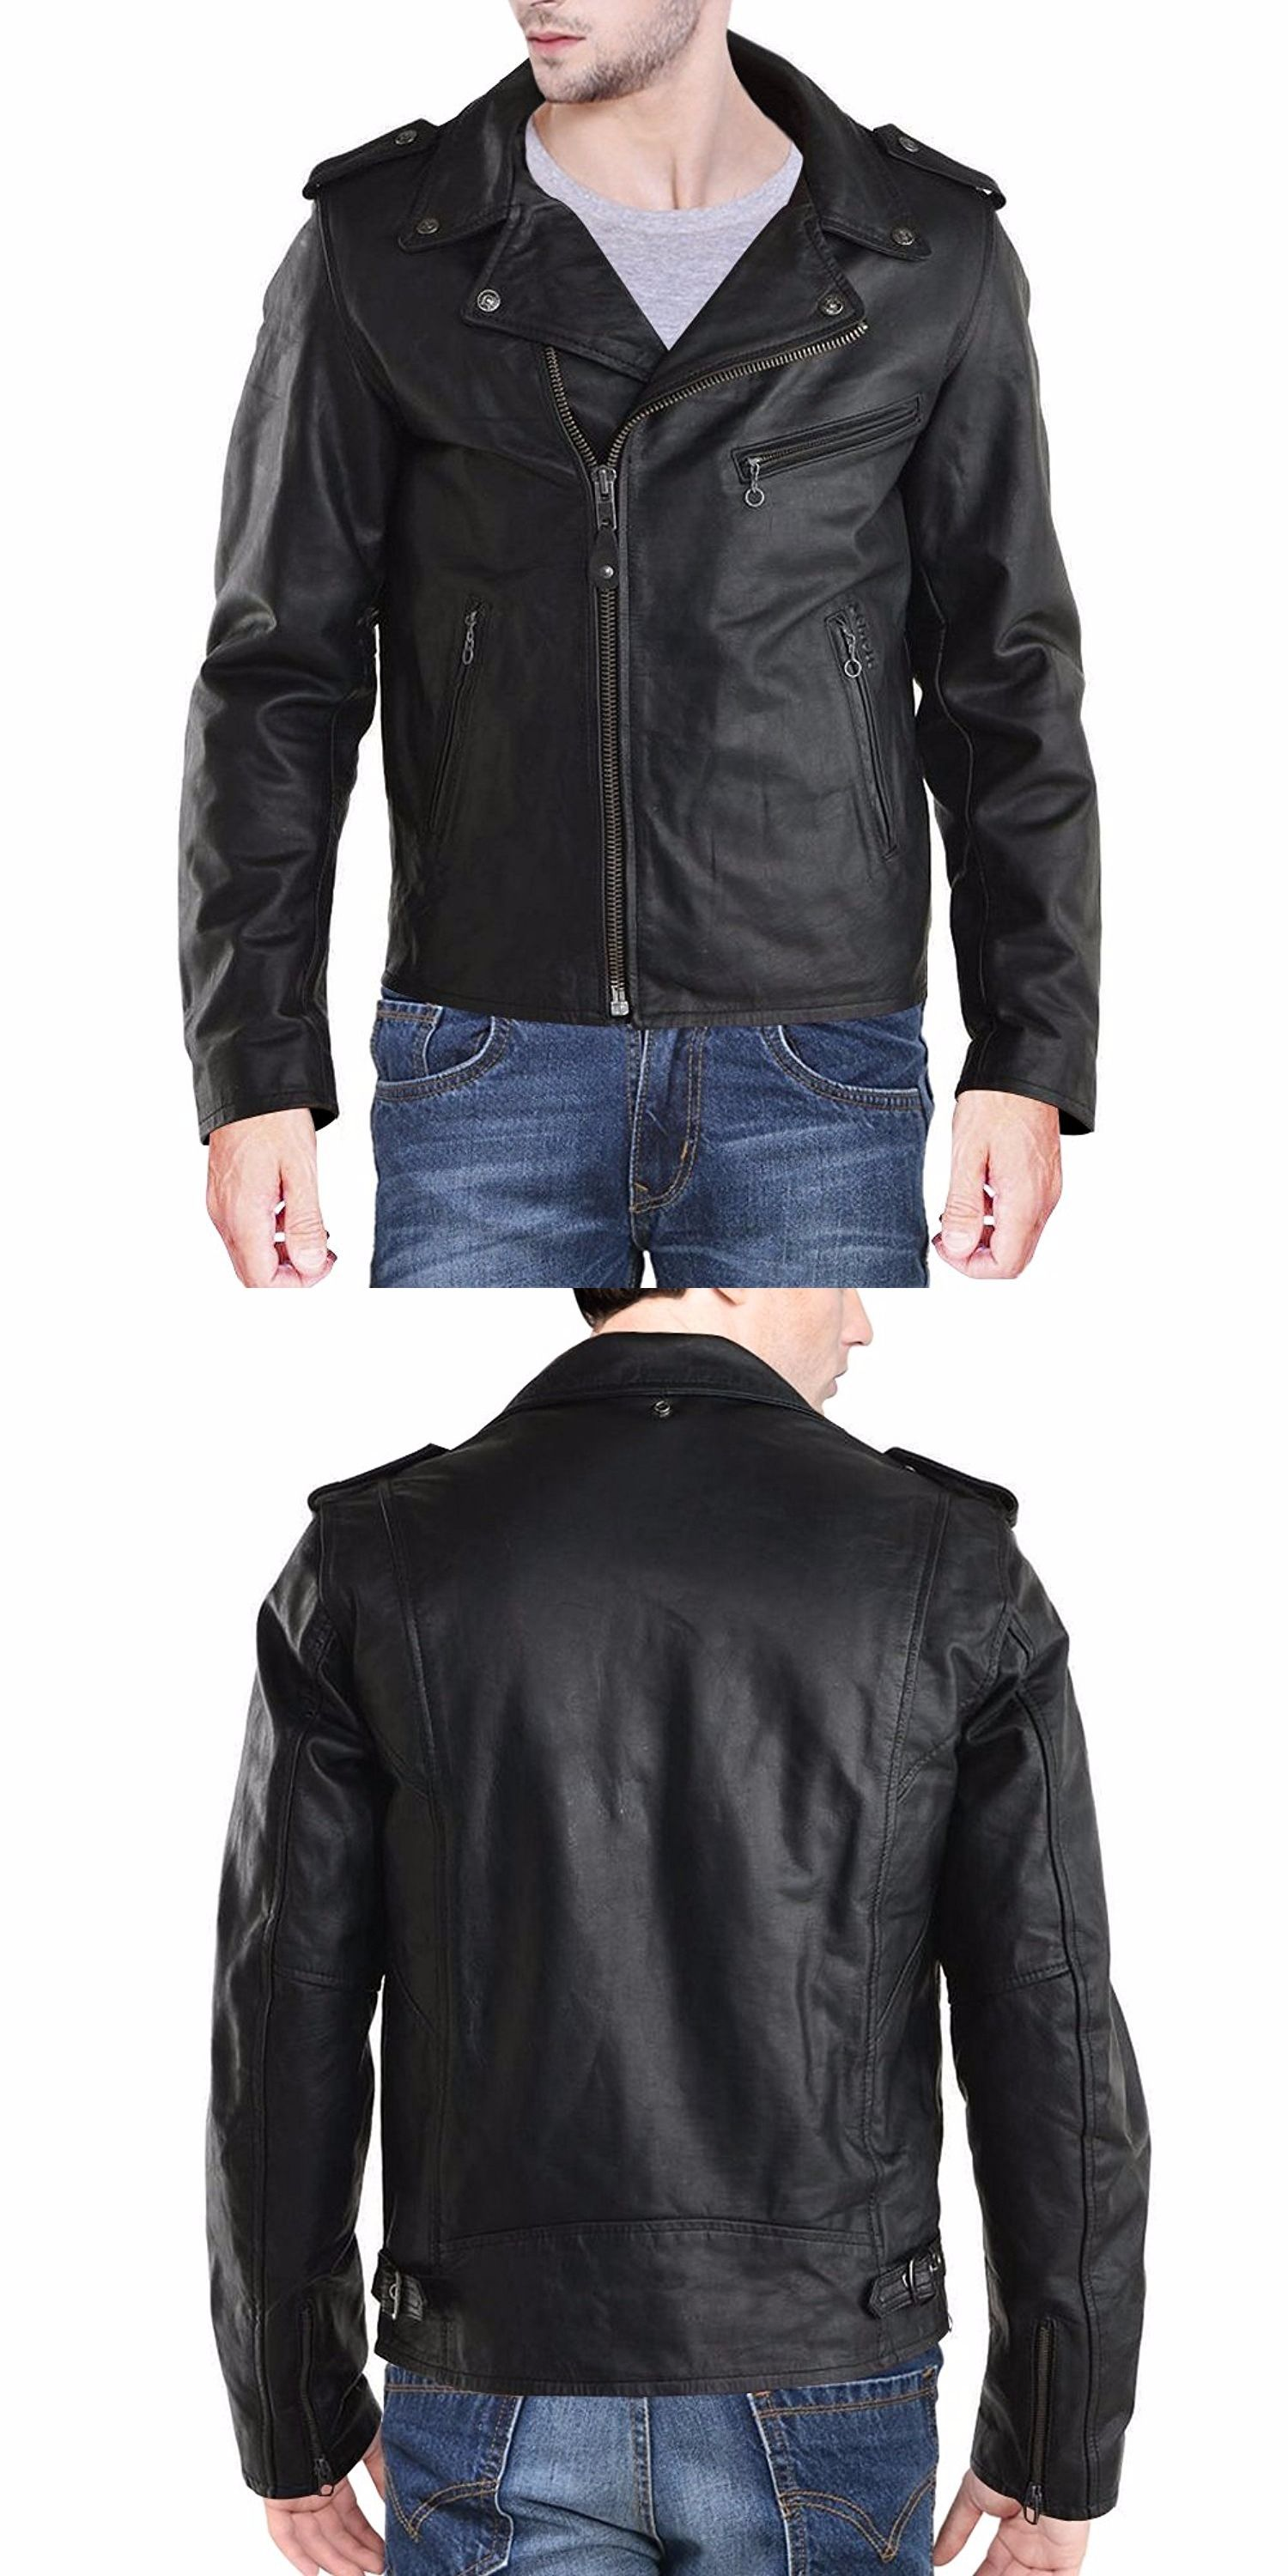 Zaan Leathers Launching for Bikers. Z&L Men's Lambskin